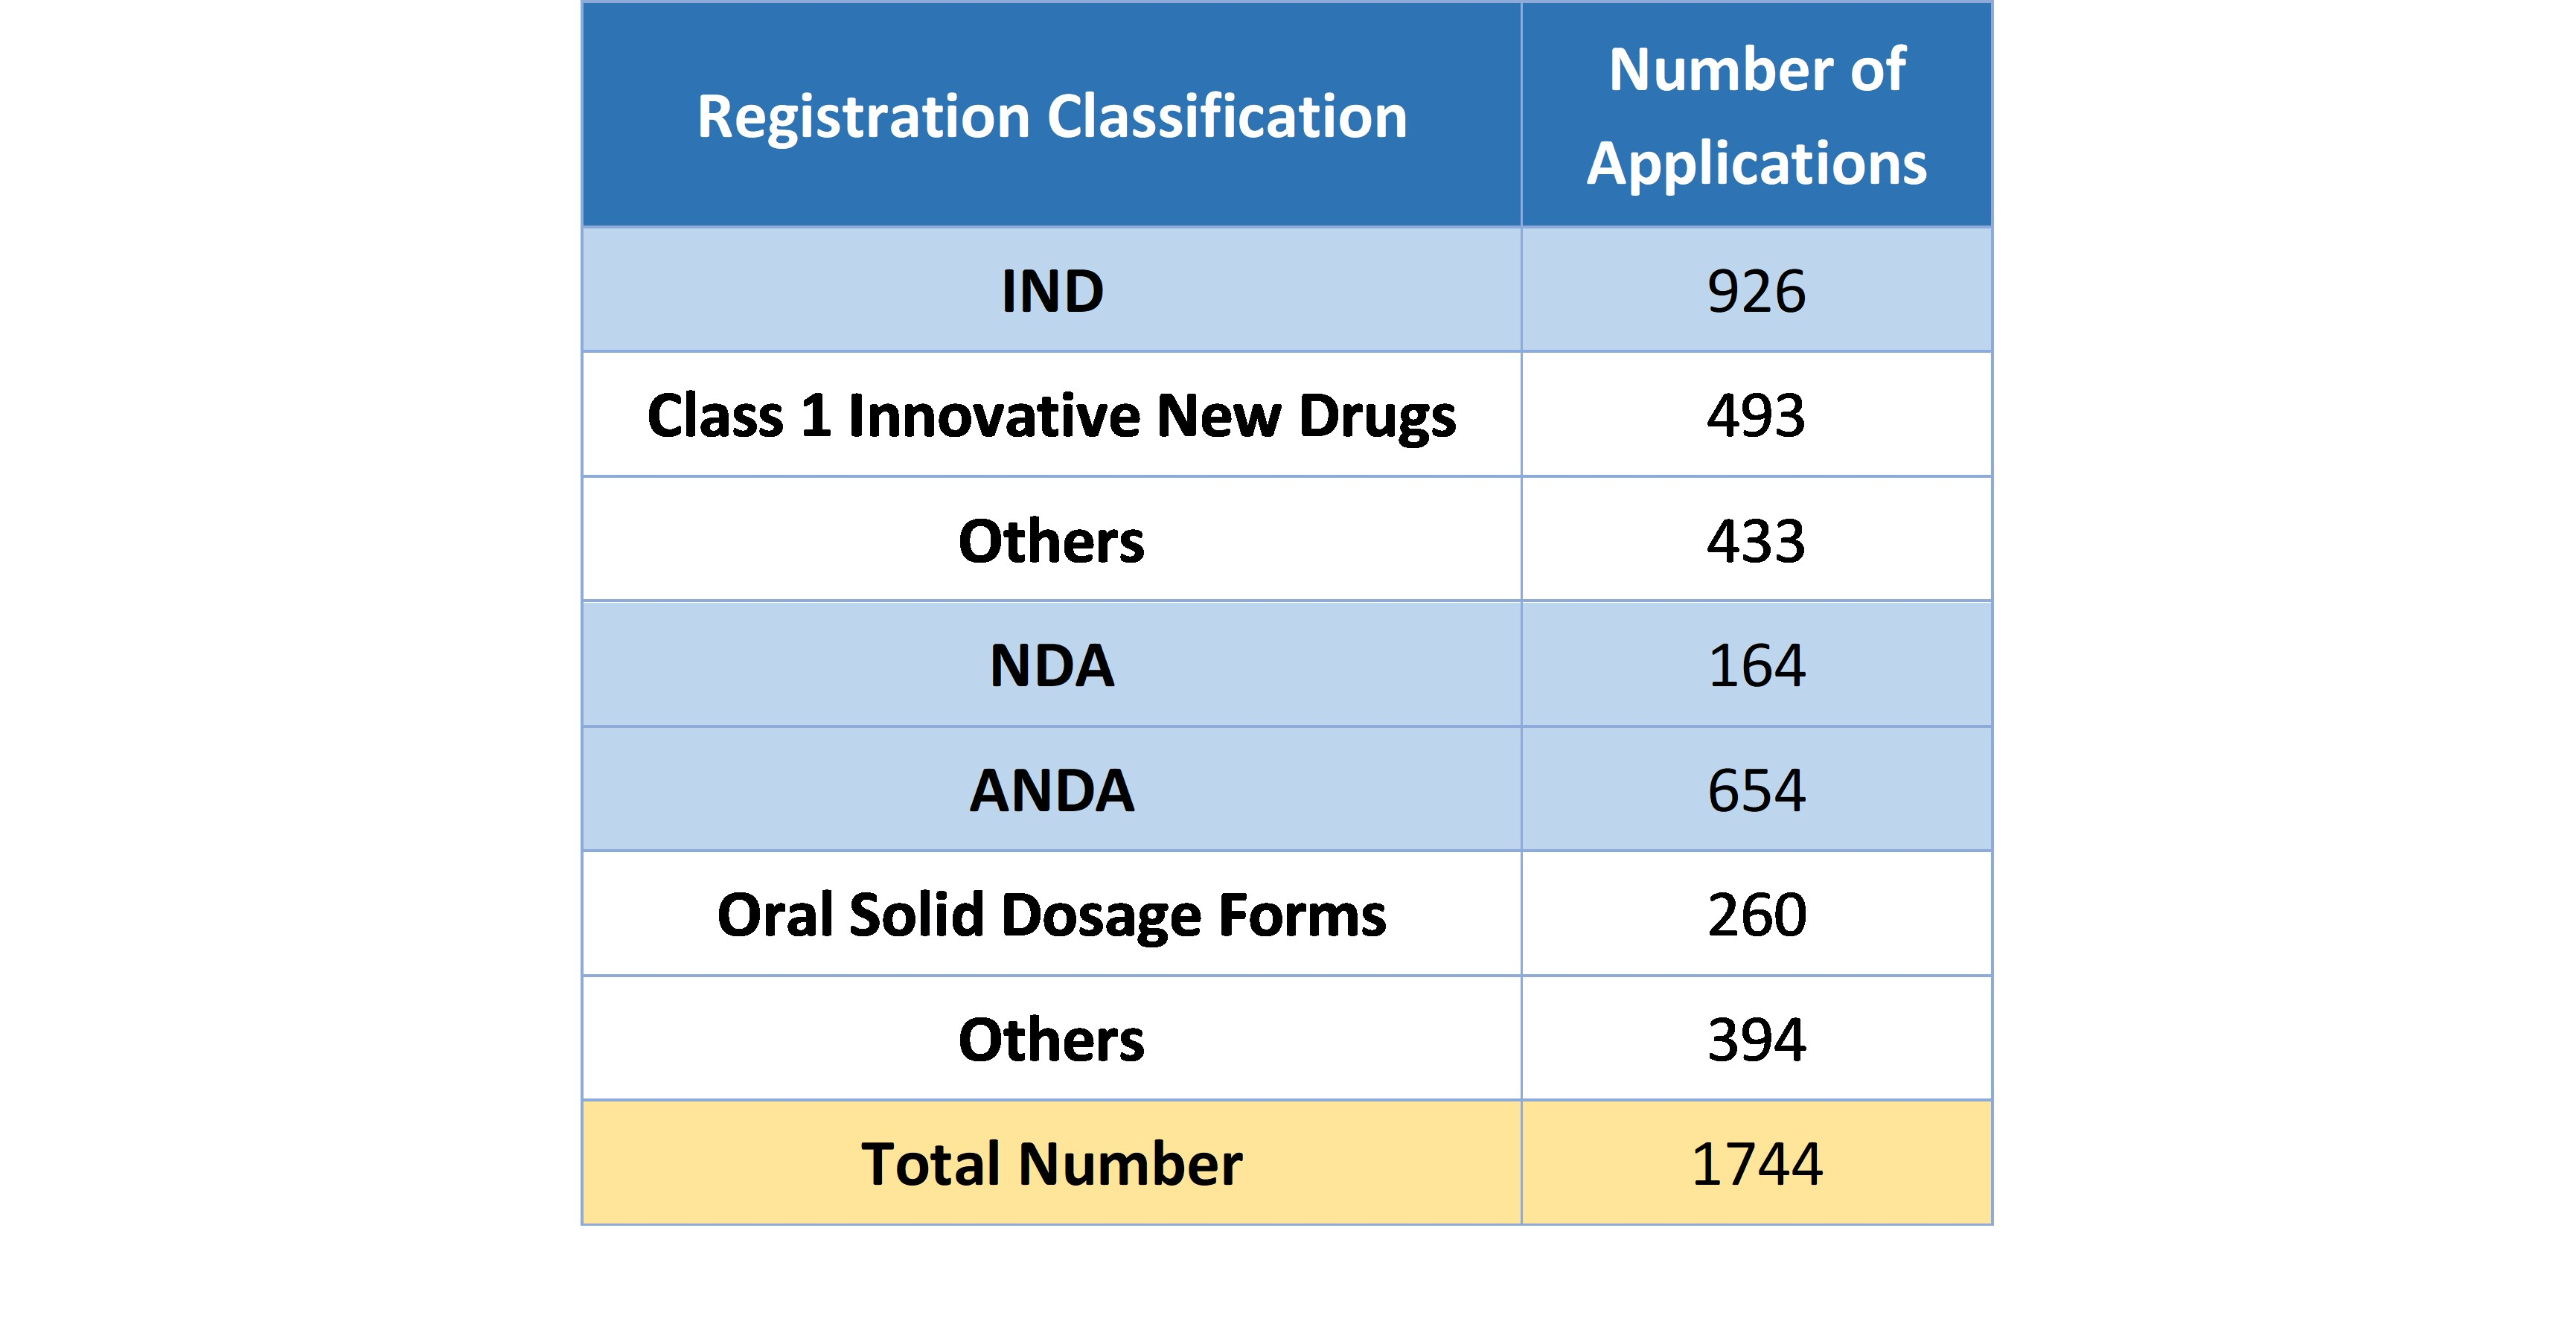 Table 4. Number of Applications Approved under Each Chemical Drug Registration Classification